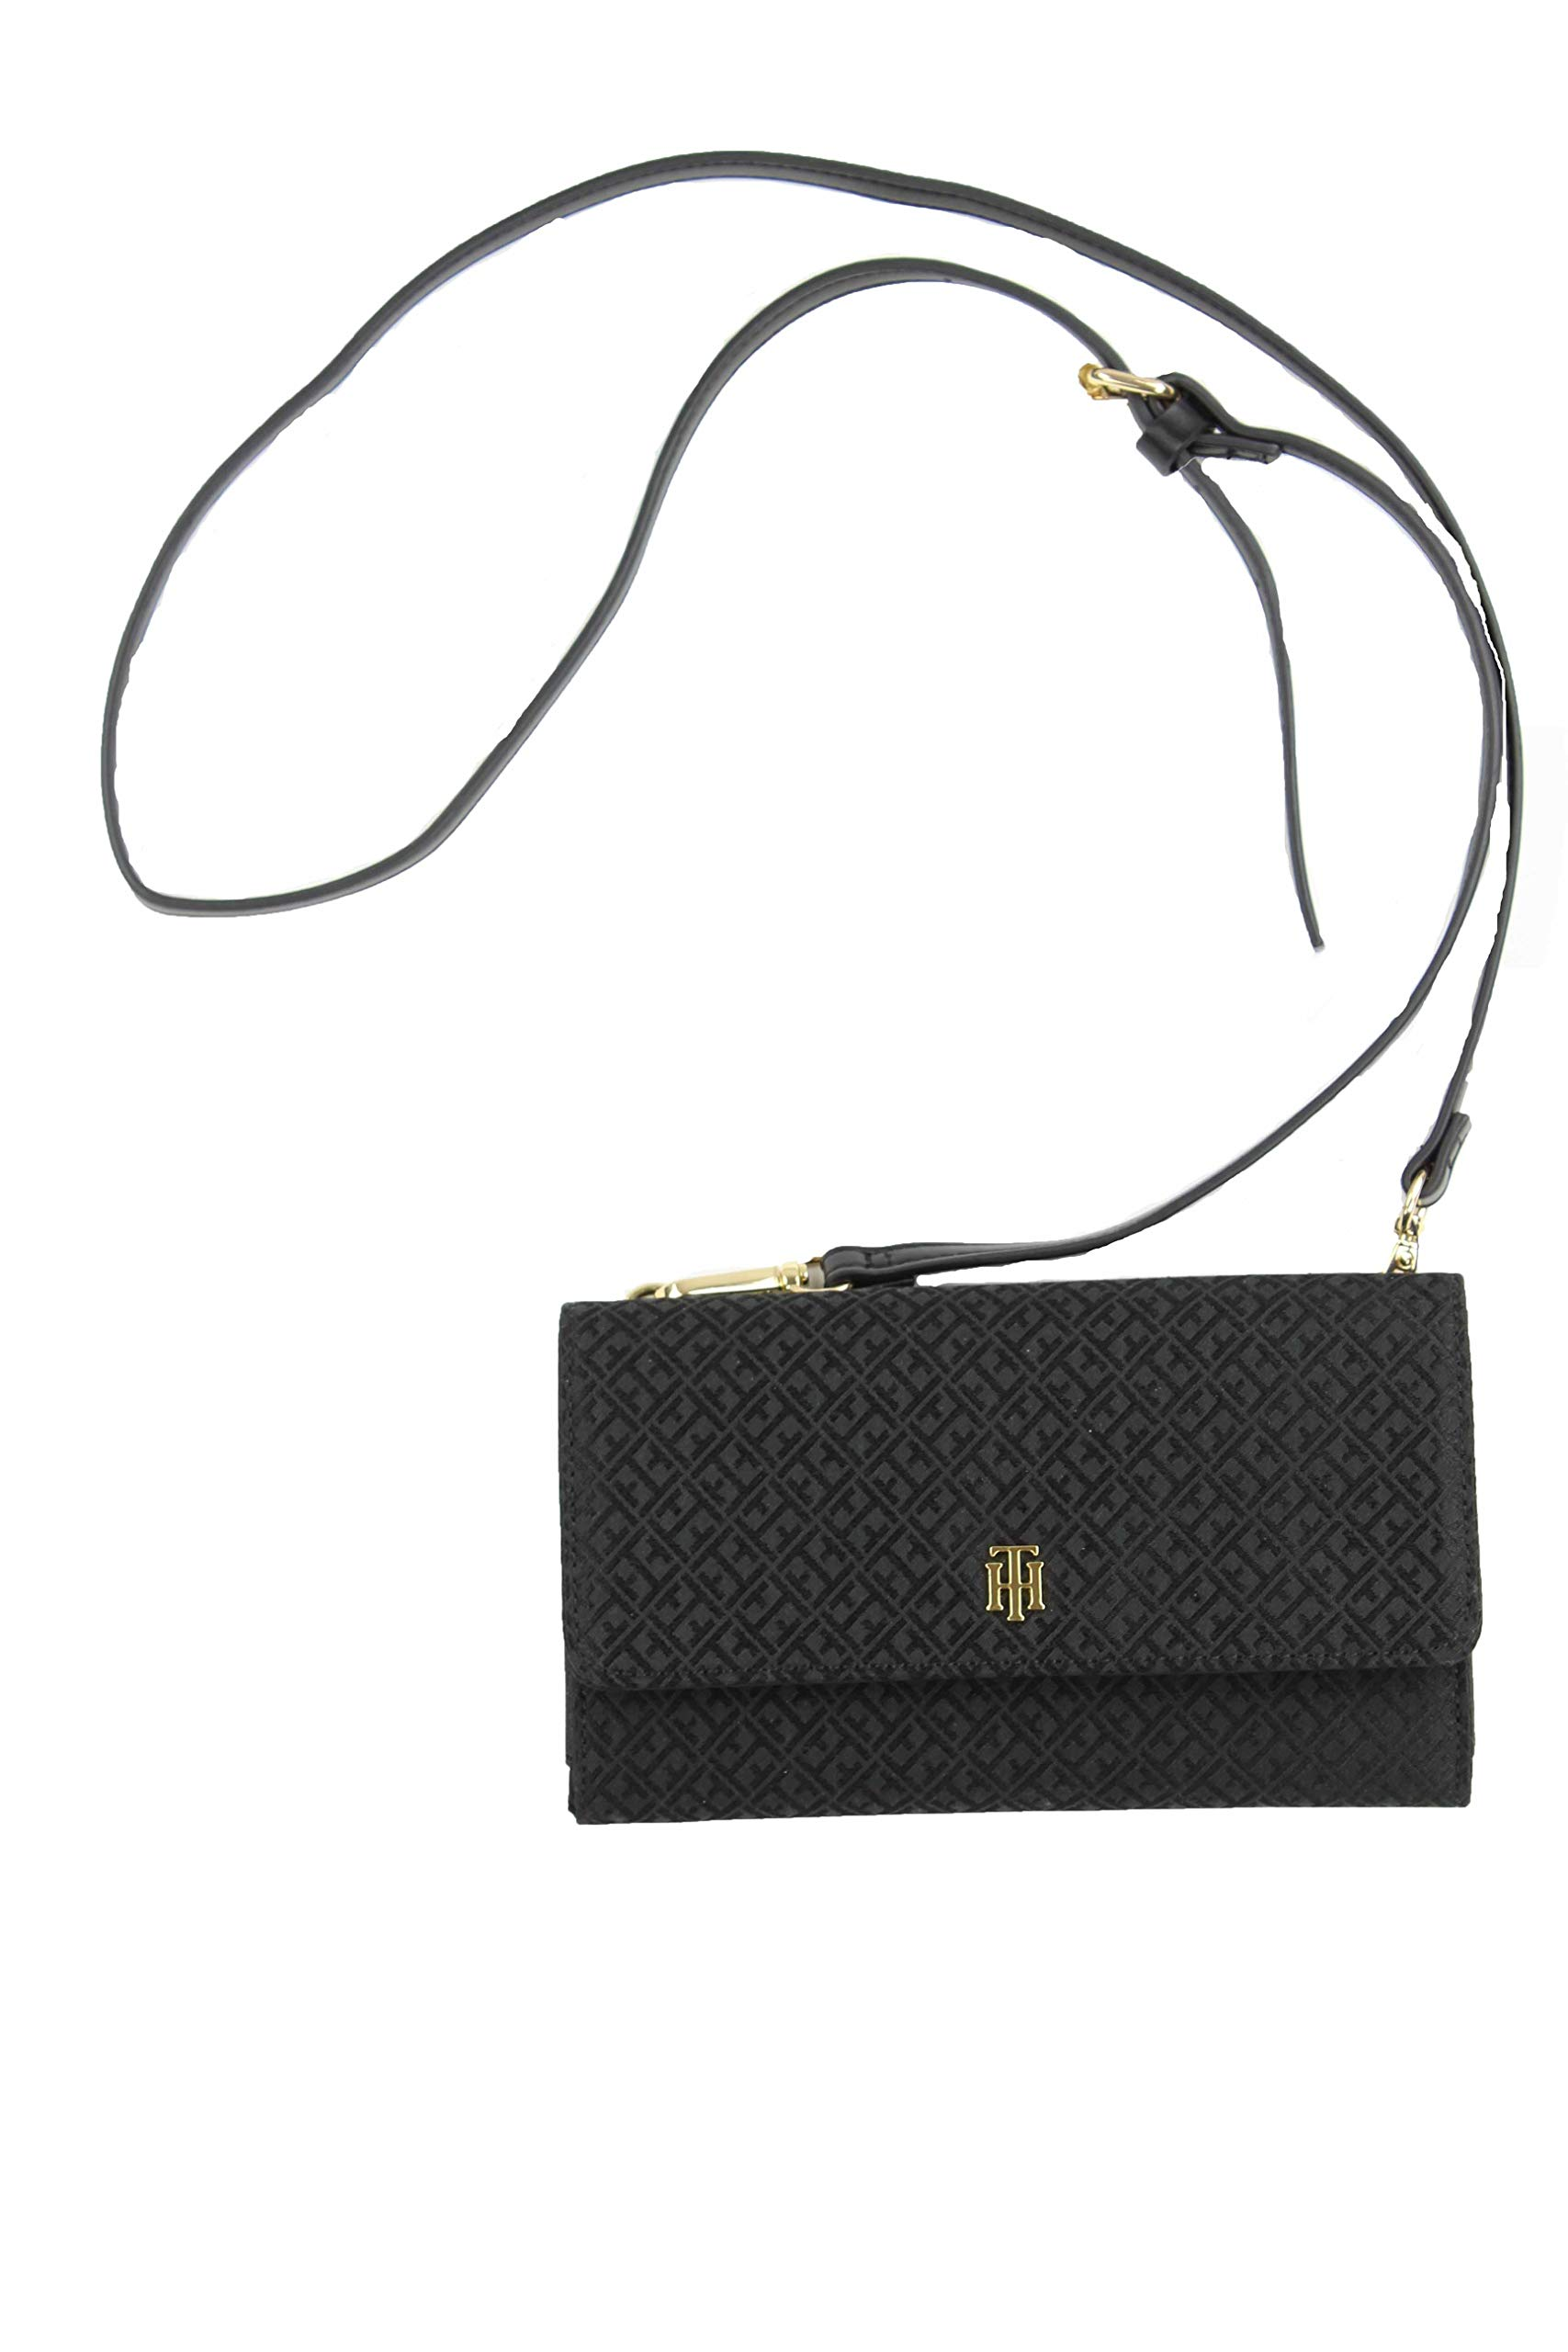 Tommy Hilfiger Crossbody Wallet with a Snap Phone Pocket